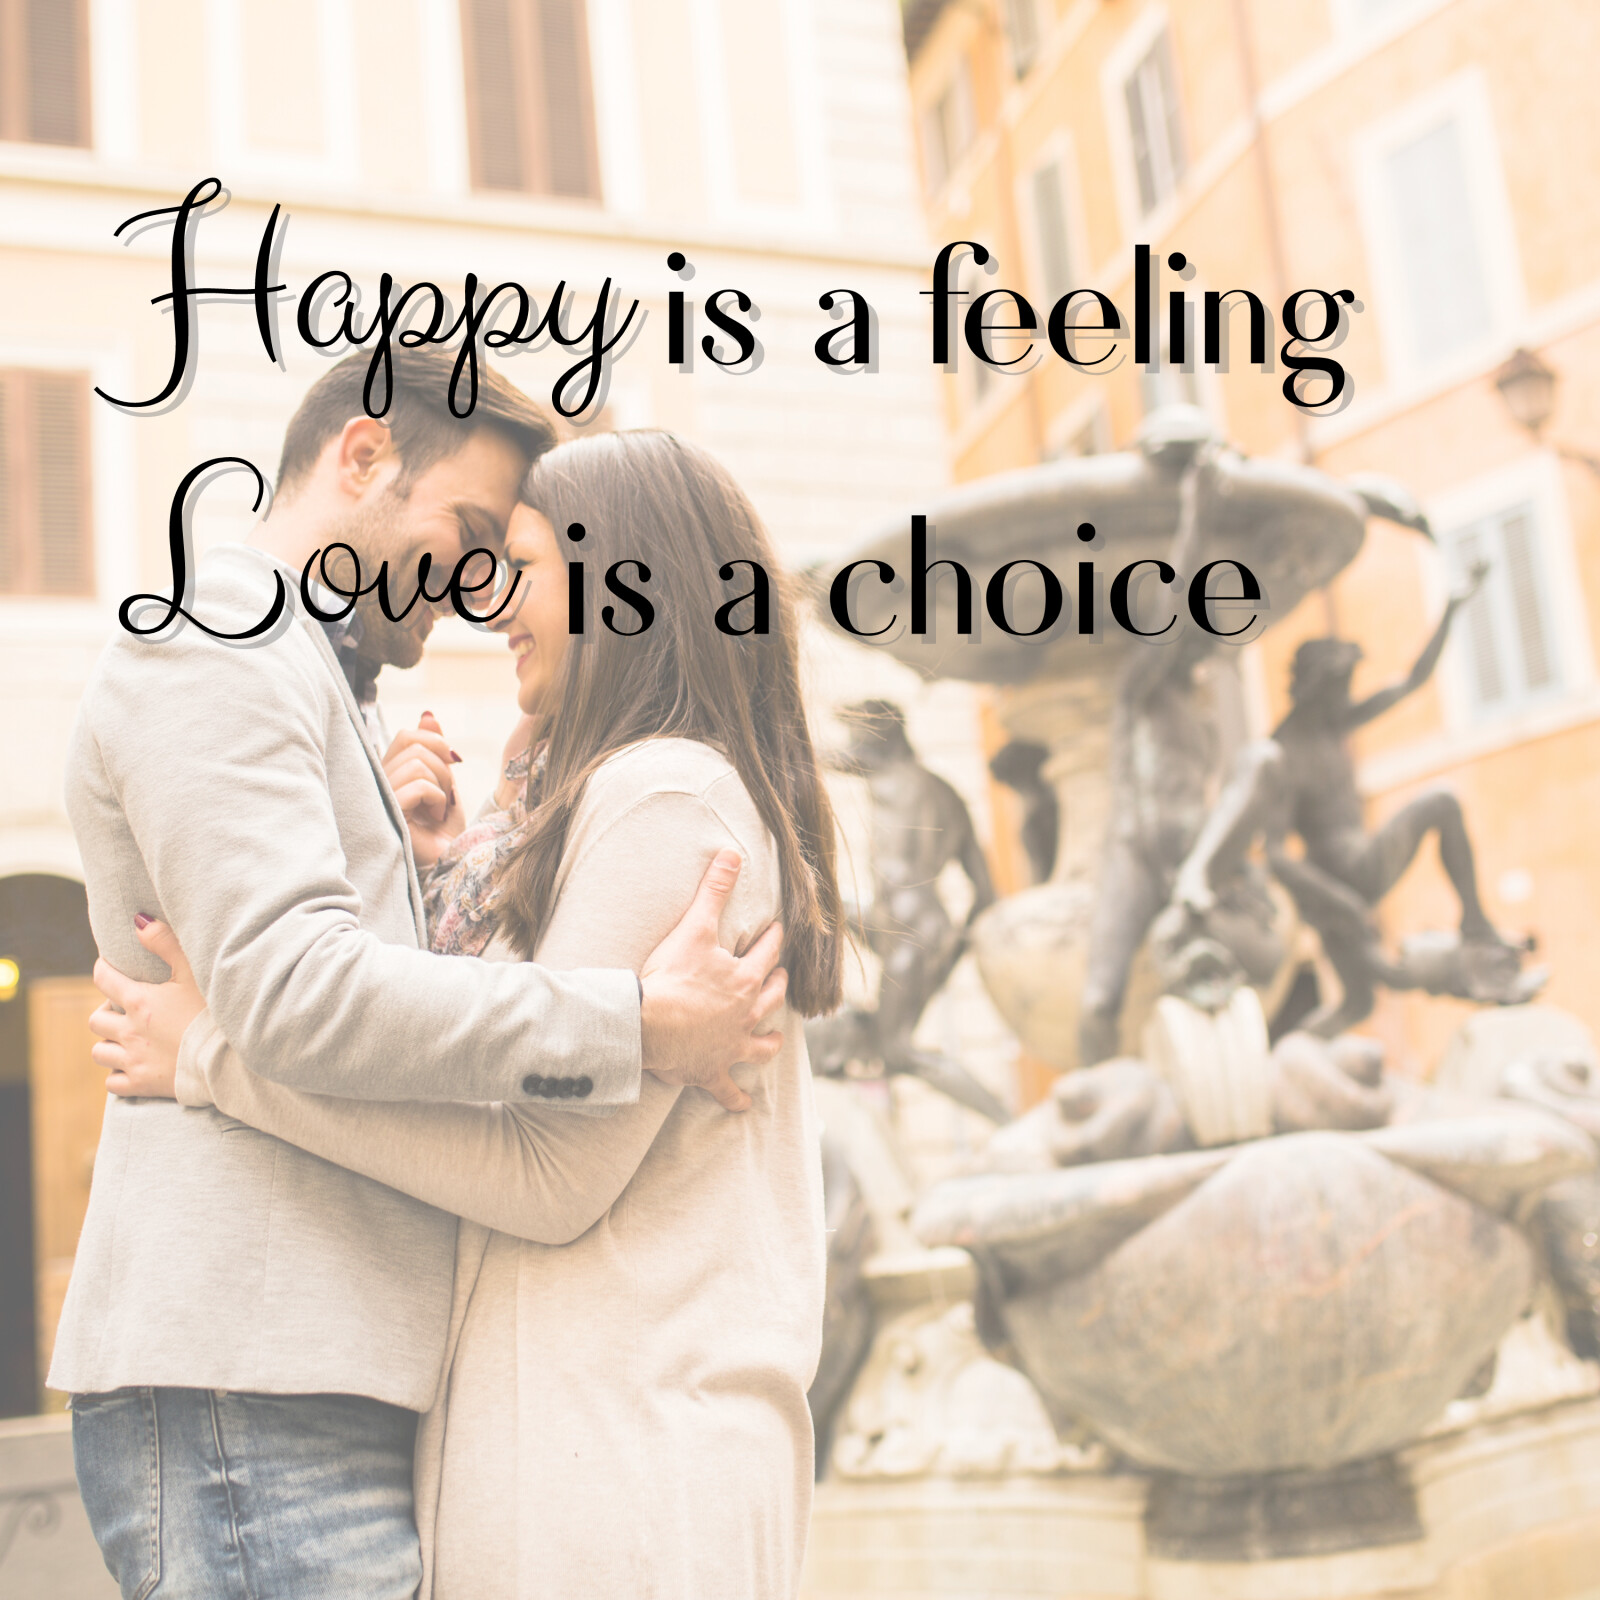 Happy is a feeling, Love is a choice